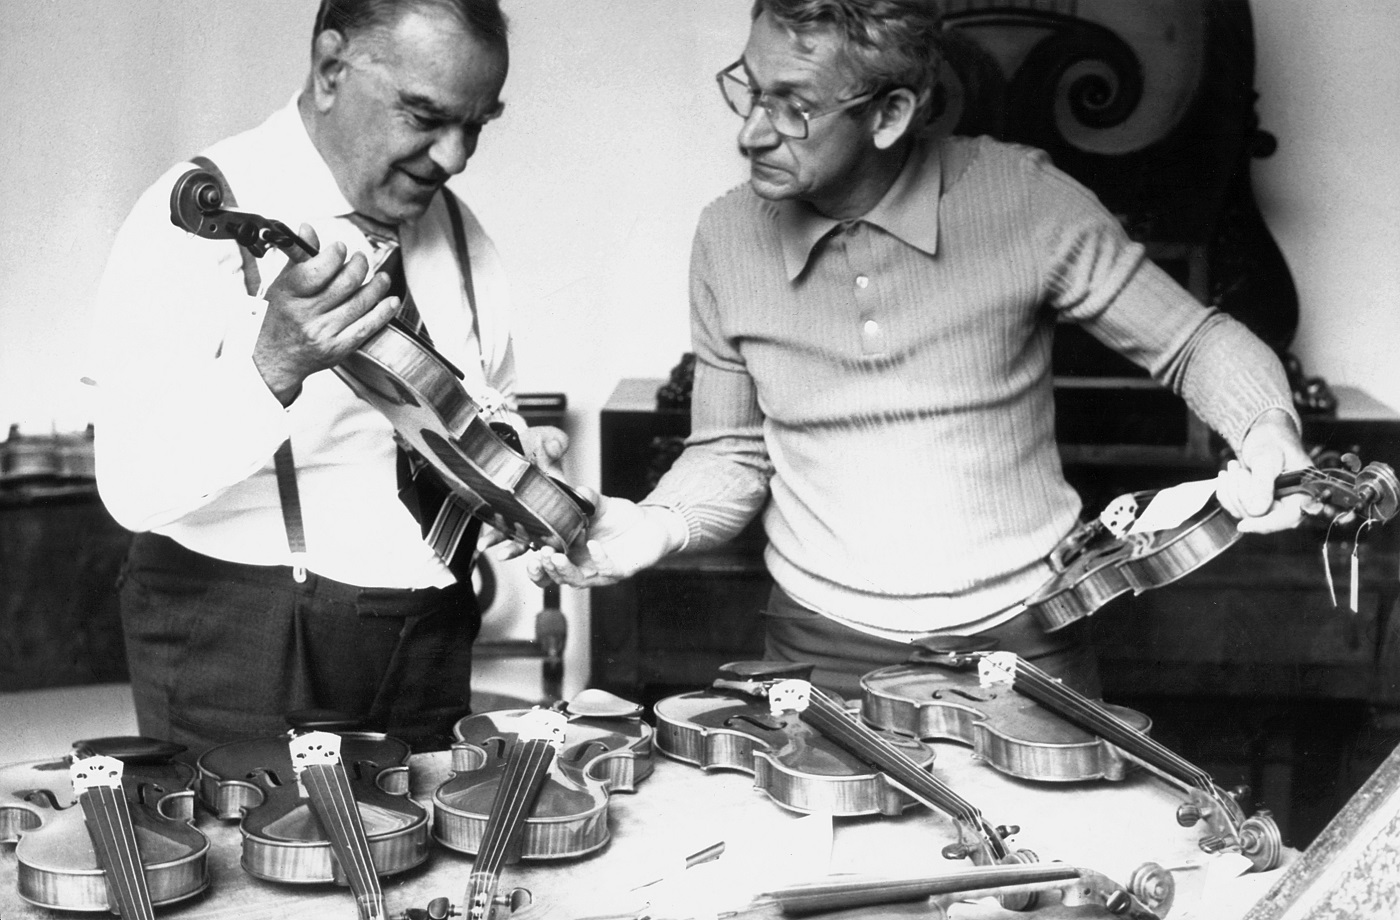 5th International Henryk Wieniawski Violin Making Competition (1977) in photographs